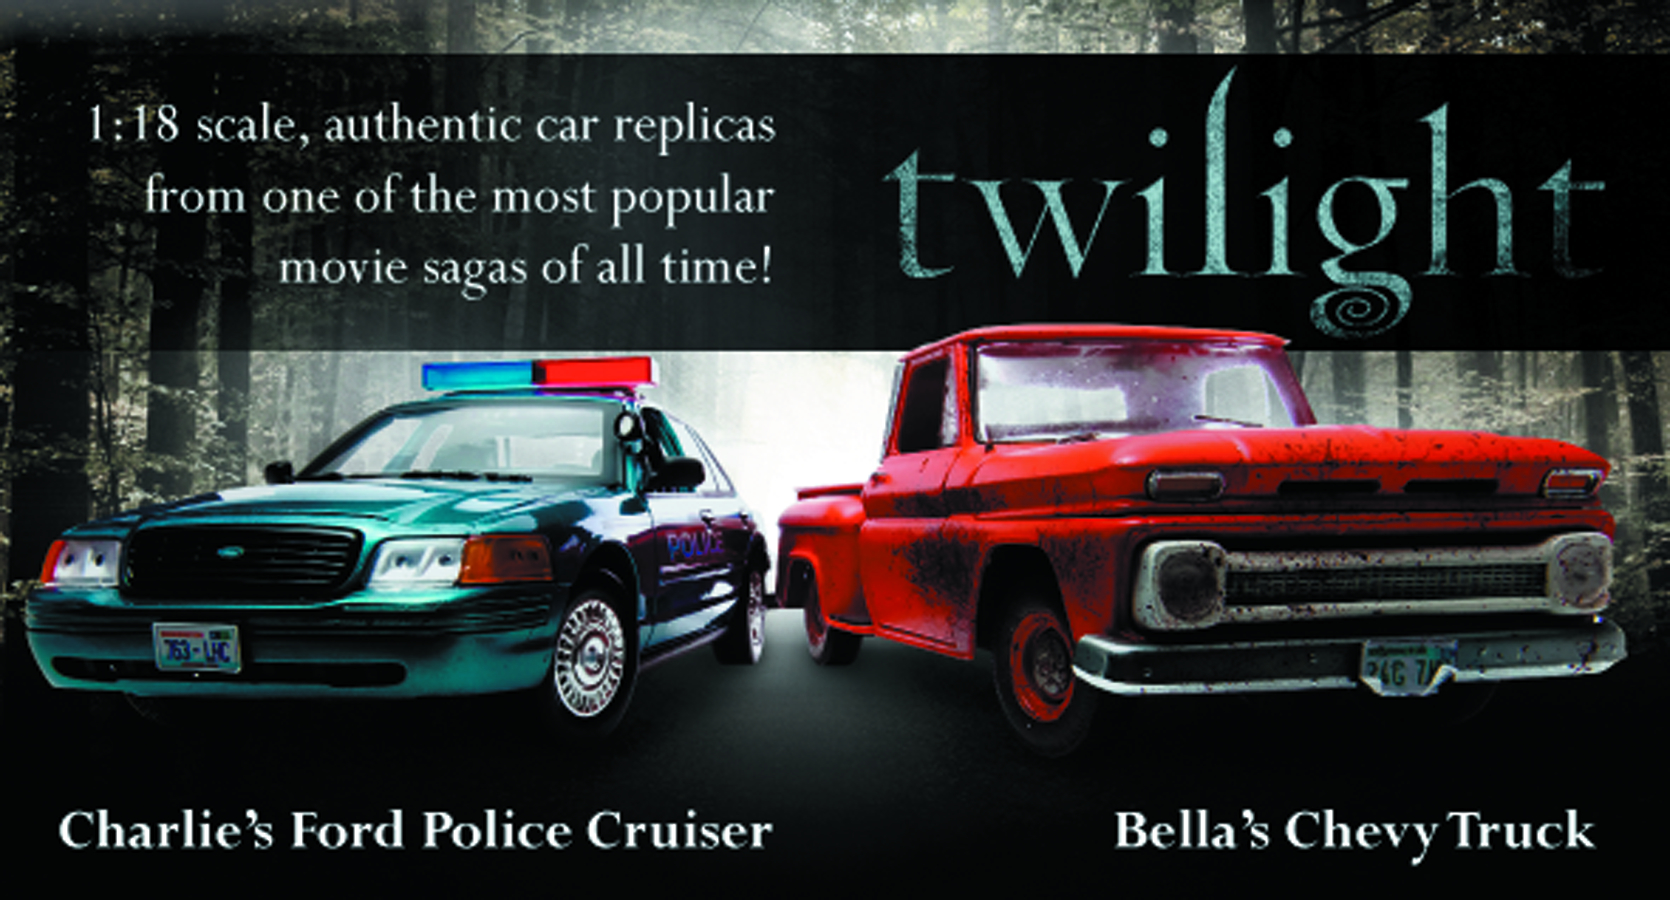 TWILIGHT BELLA 1963 CHEVY TRUCK 1/18 DIE-CAST